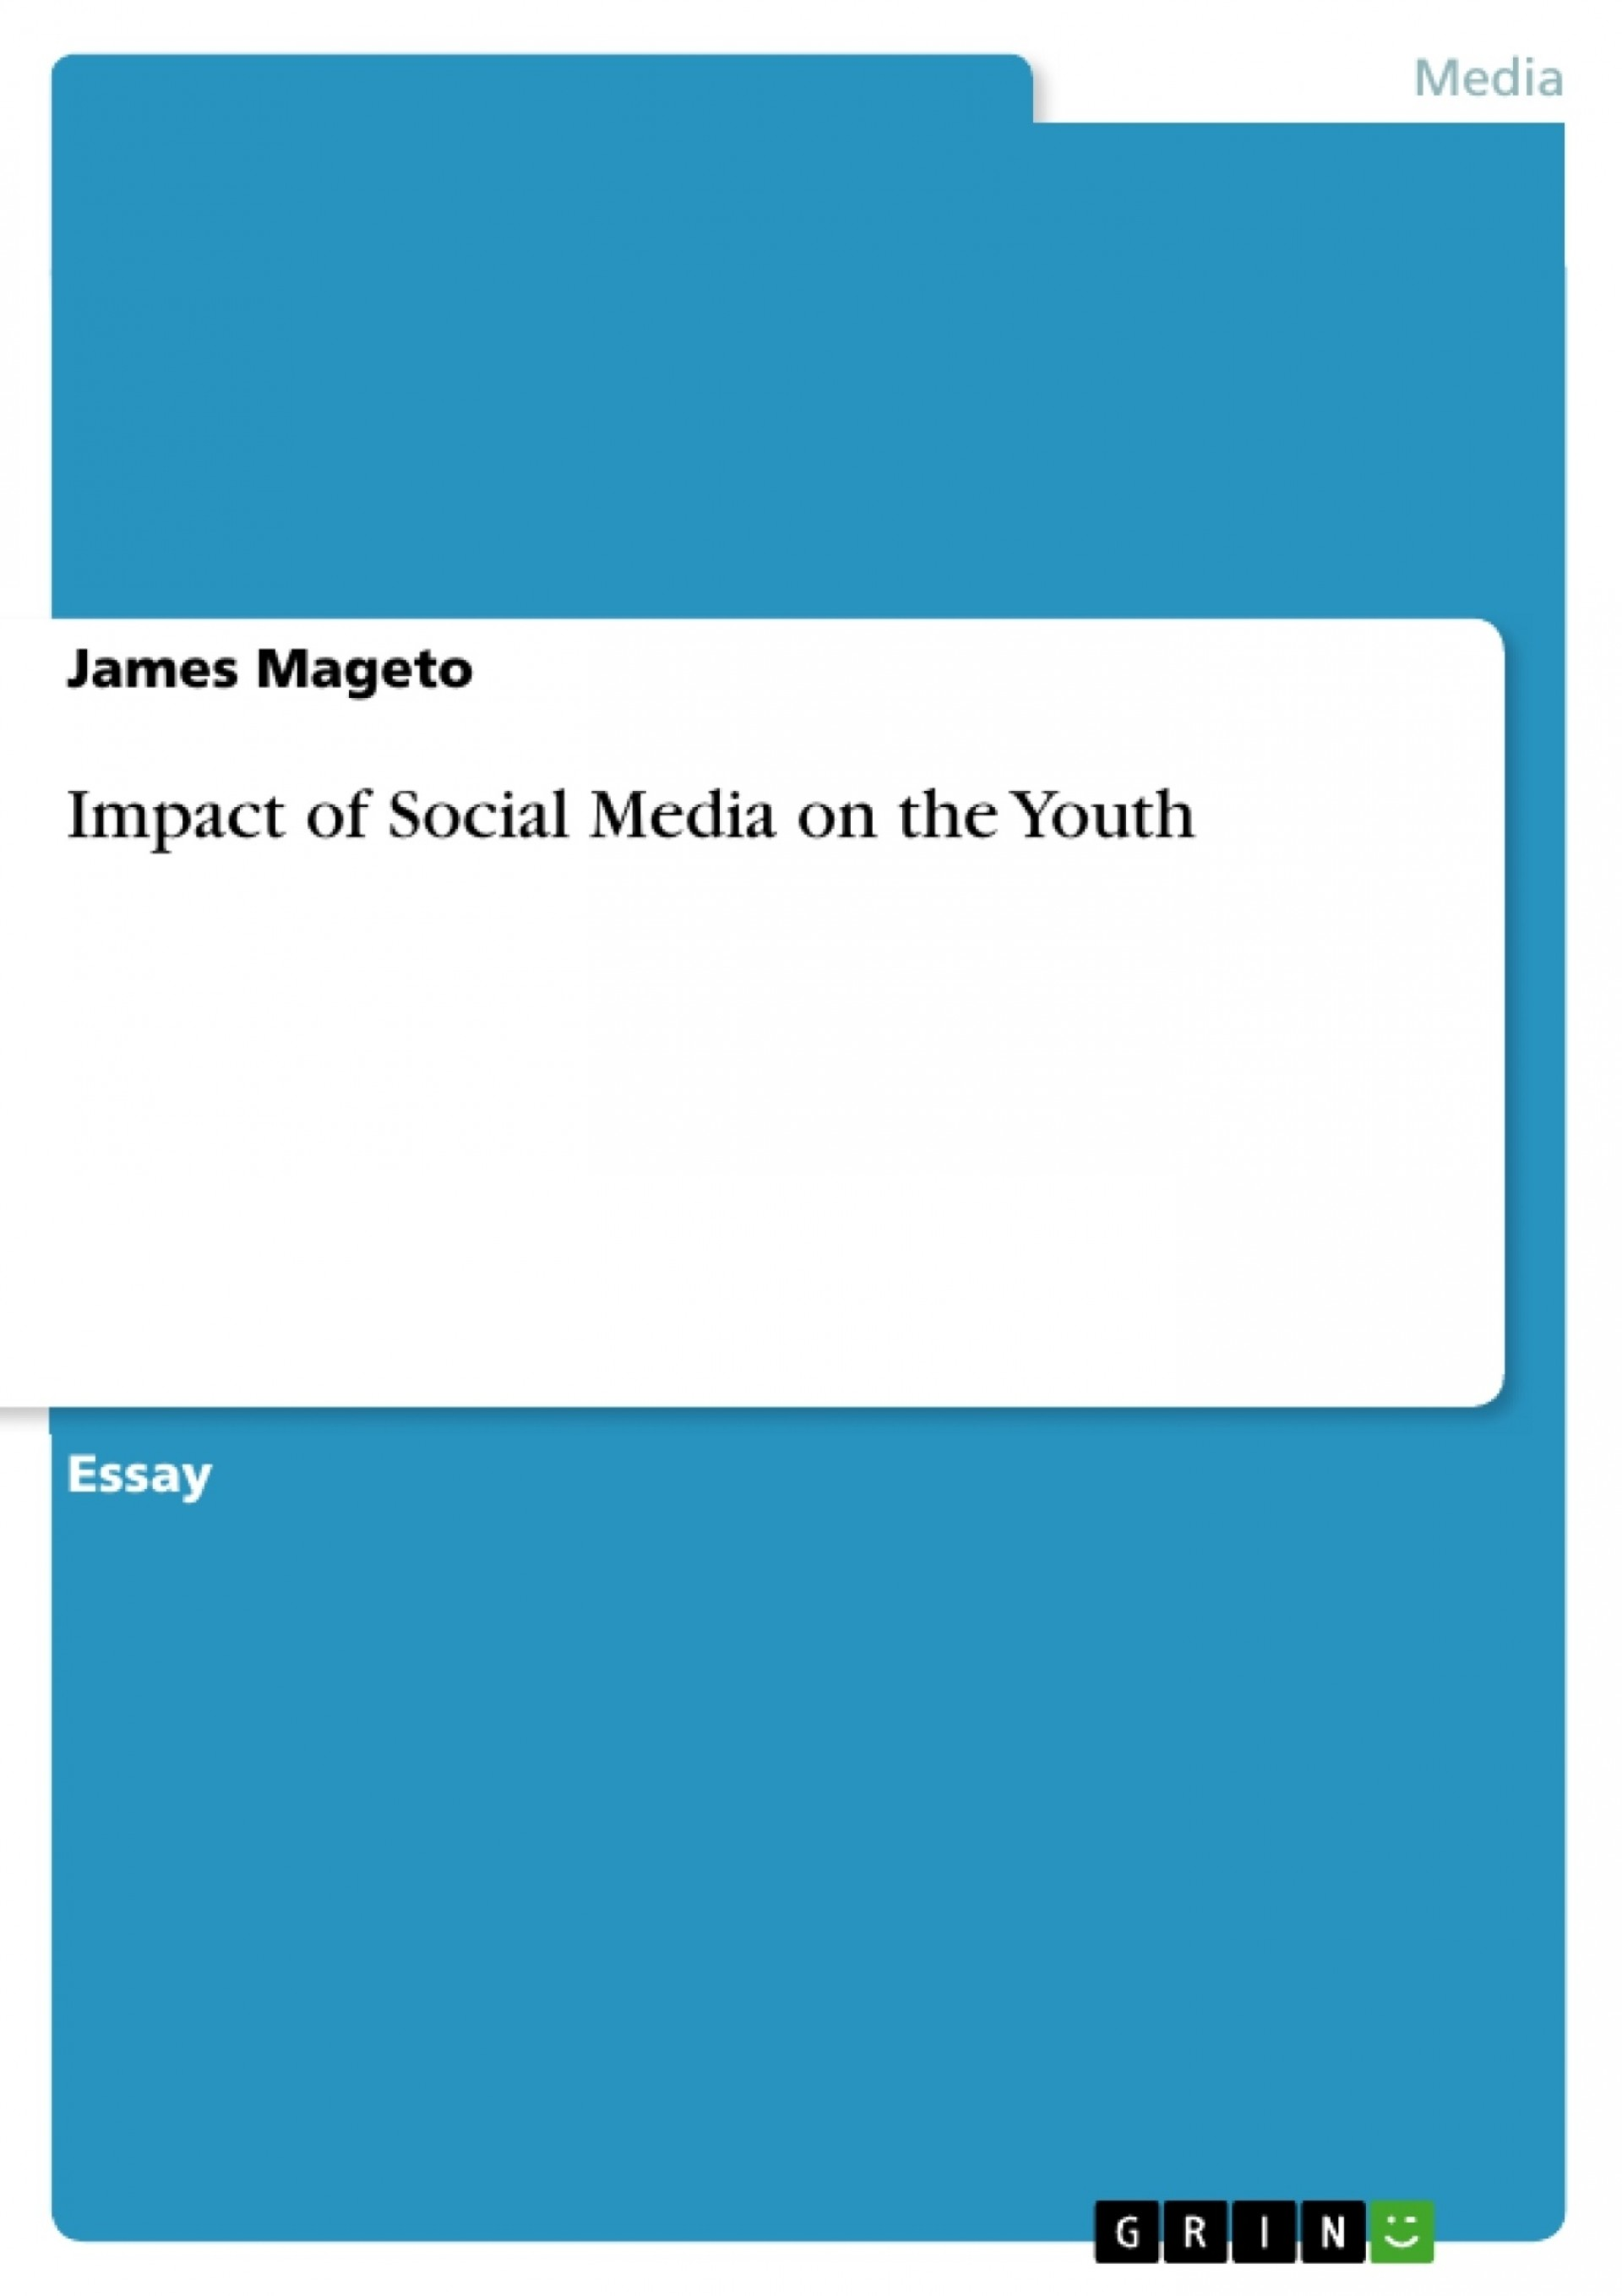 020 Research Paper Conclusion For About Social Media 358350 0 Awful 1920